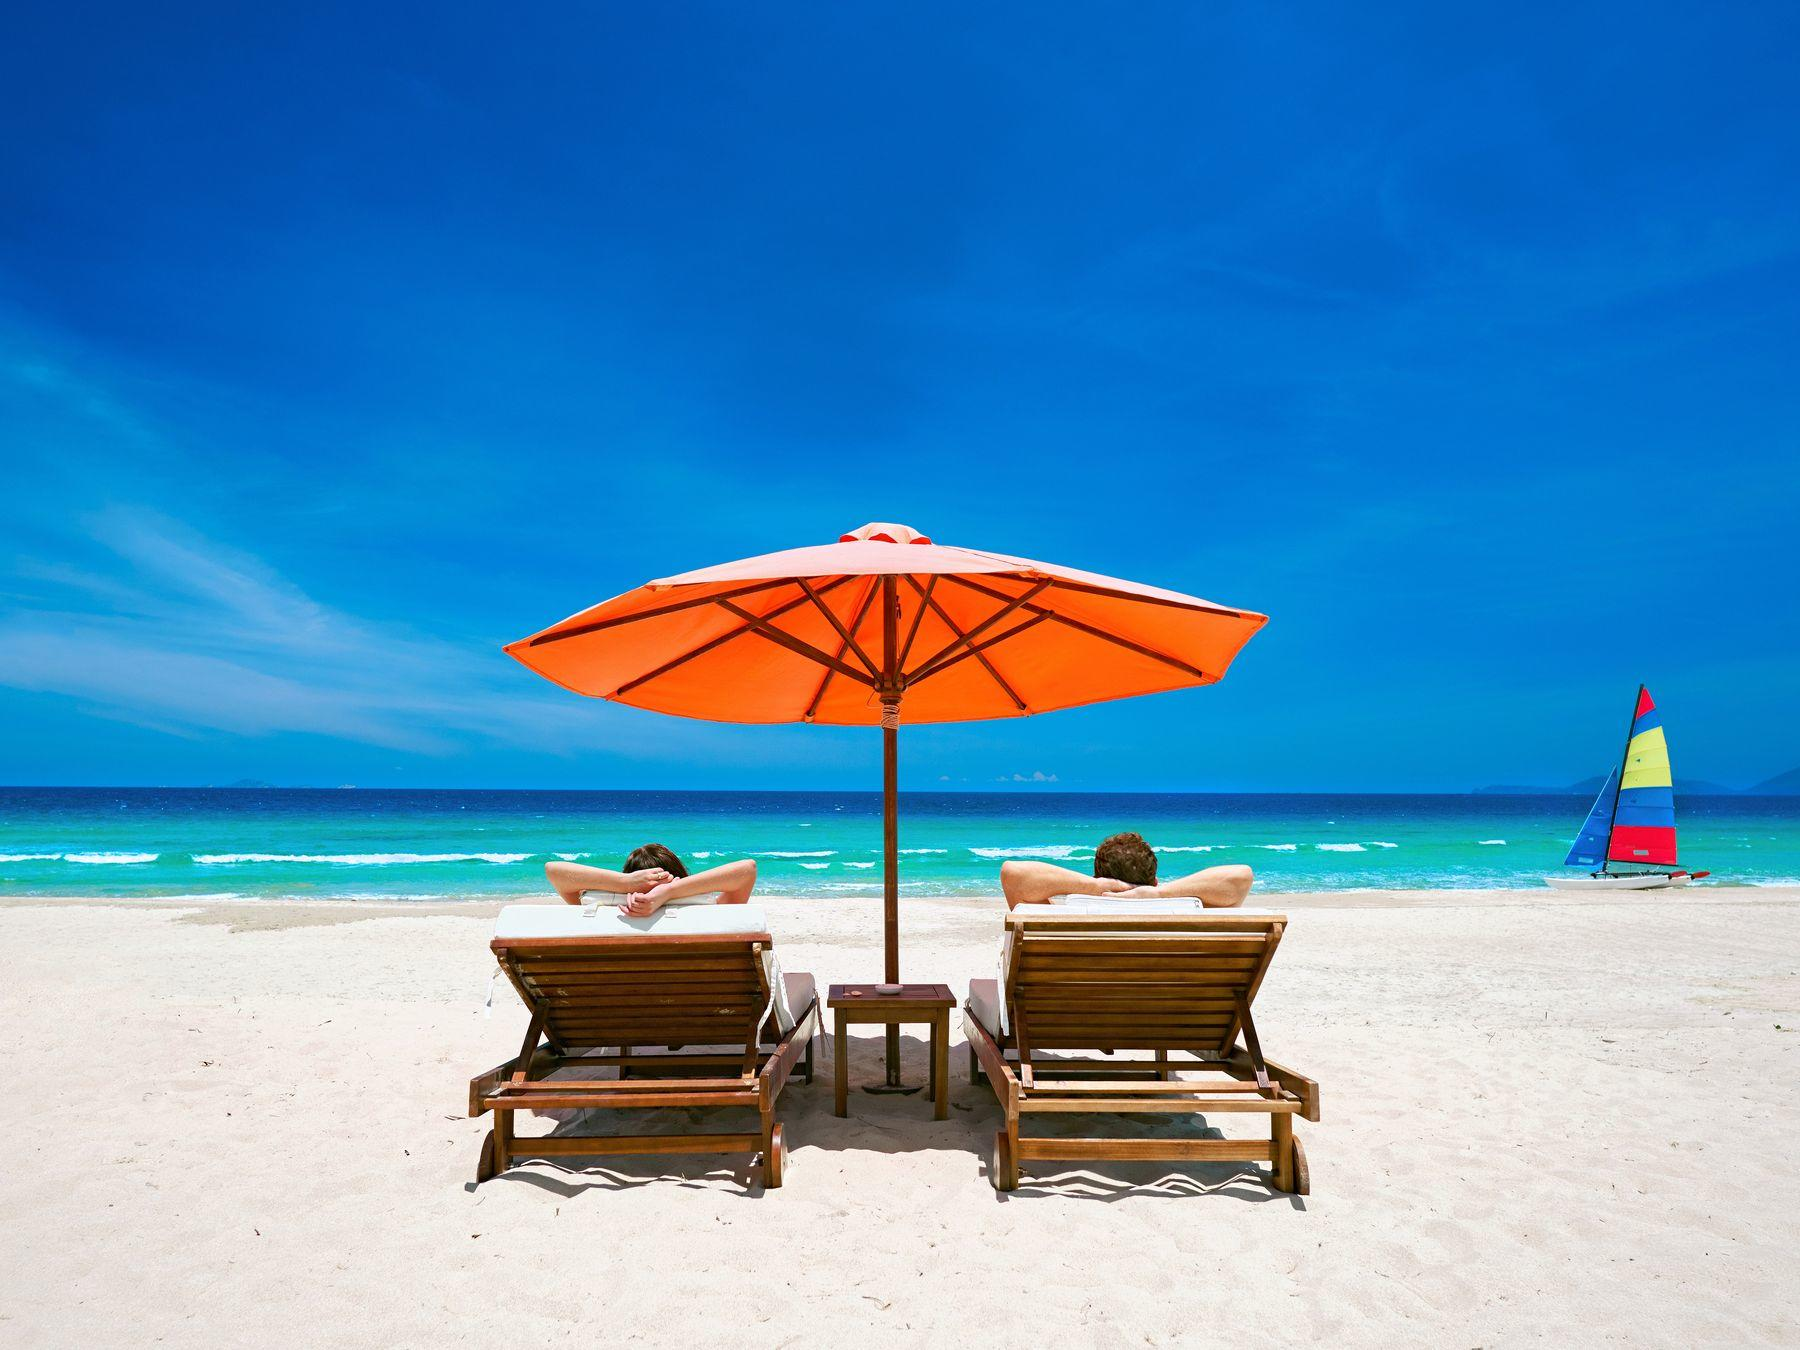 couple lounging under orange umbrella on beach with bright blue skies